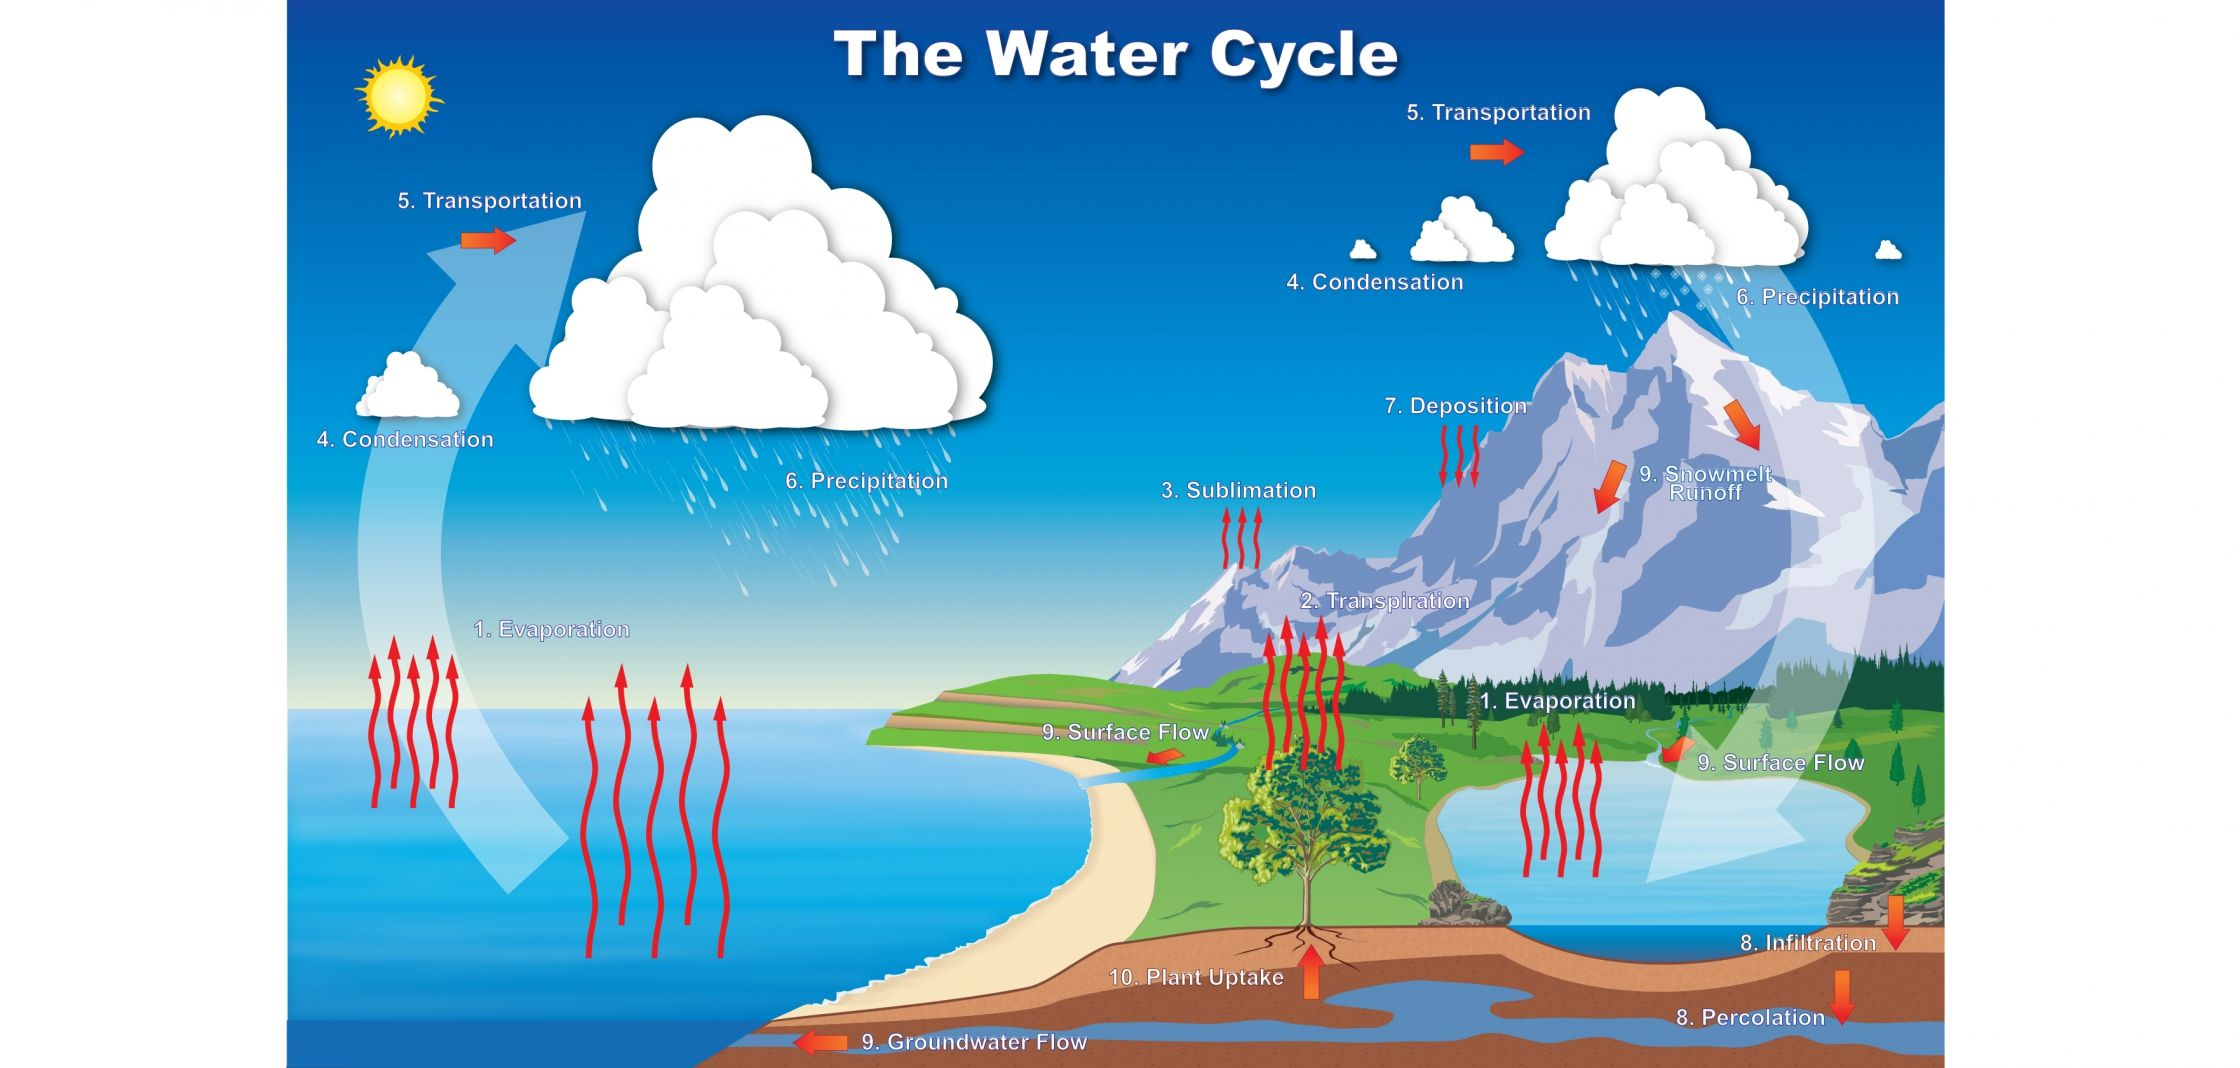 hight resolution of water moves through earth s systems in a cyclic fashion taking many forms as it travels this process is known as the hydrologic or water cycle